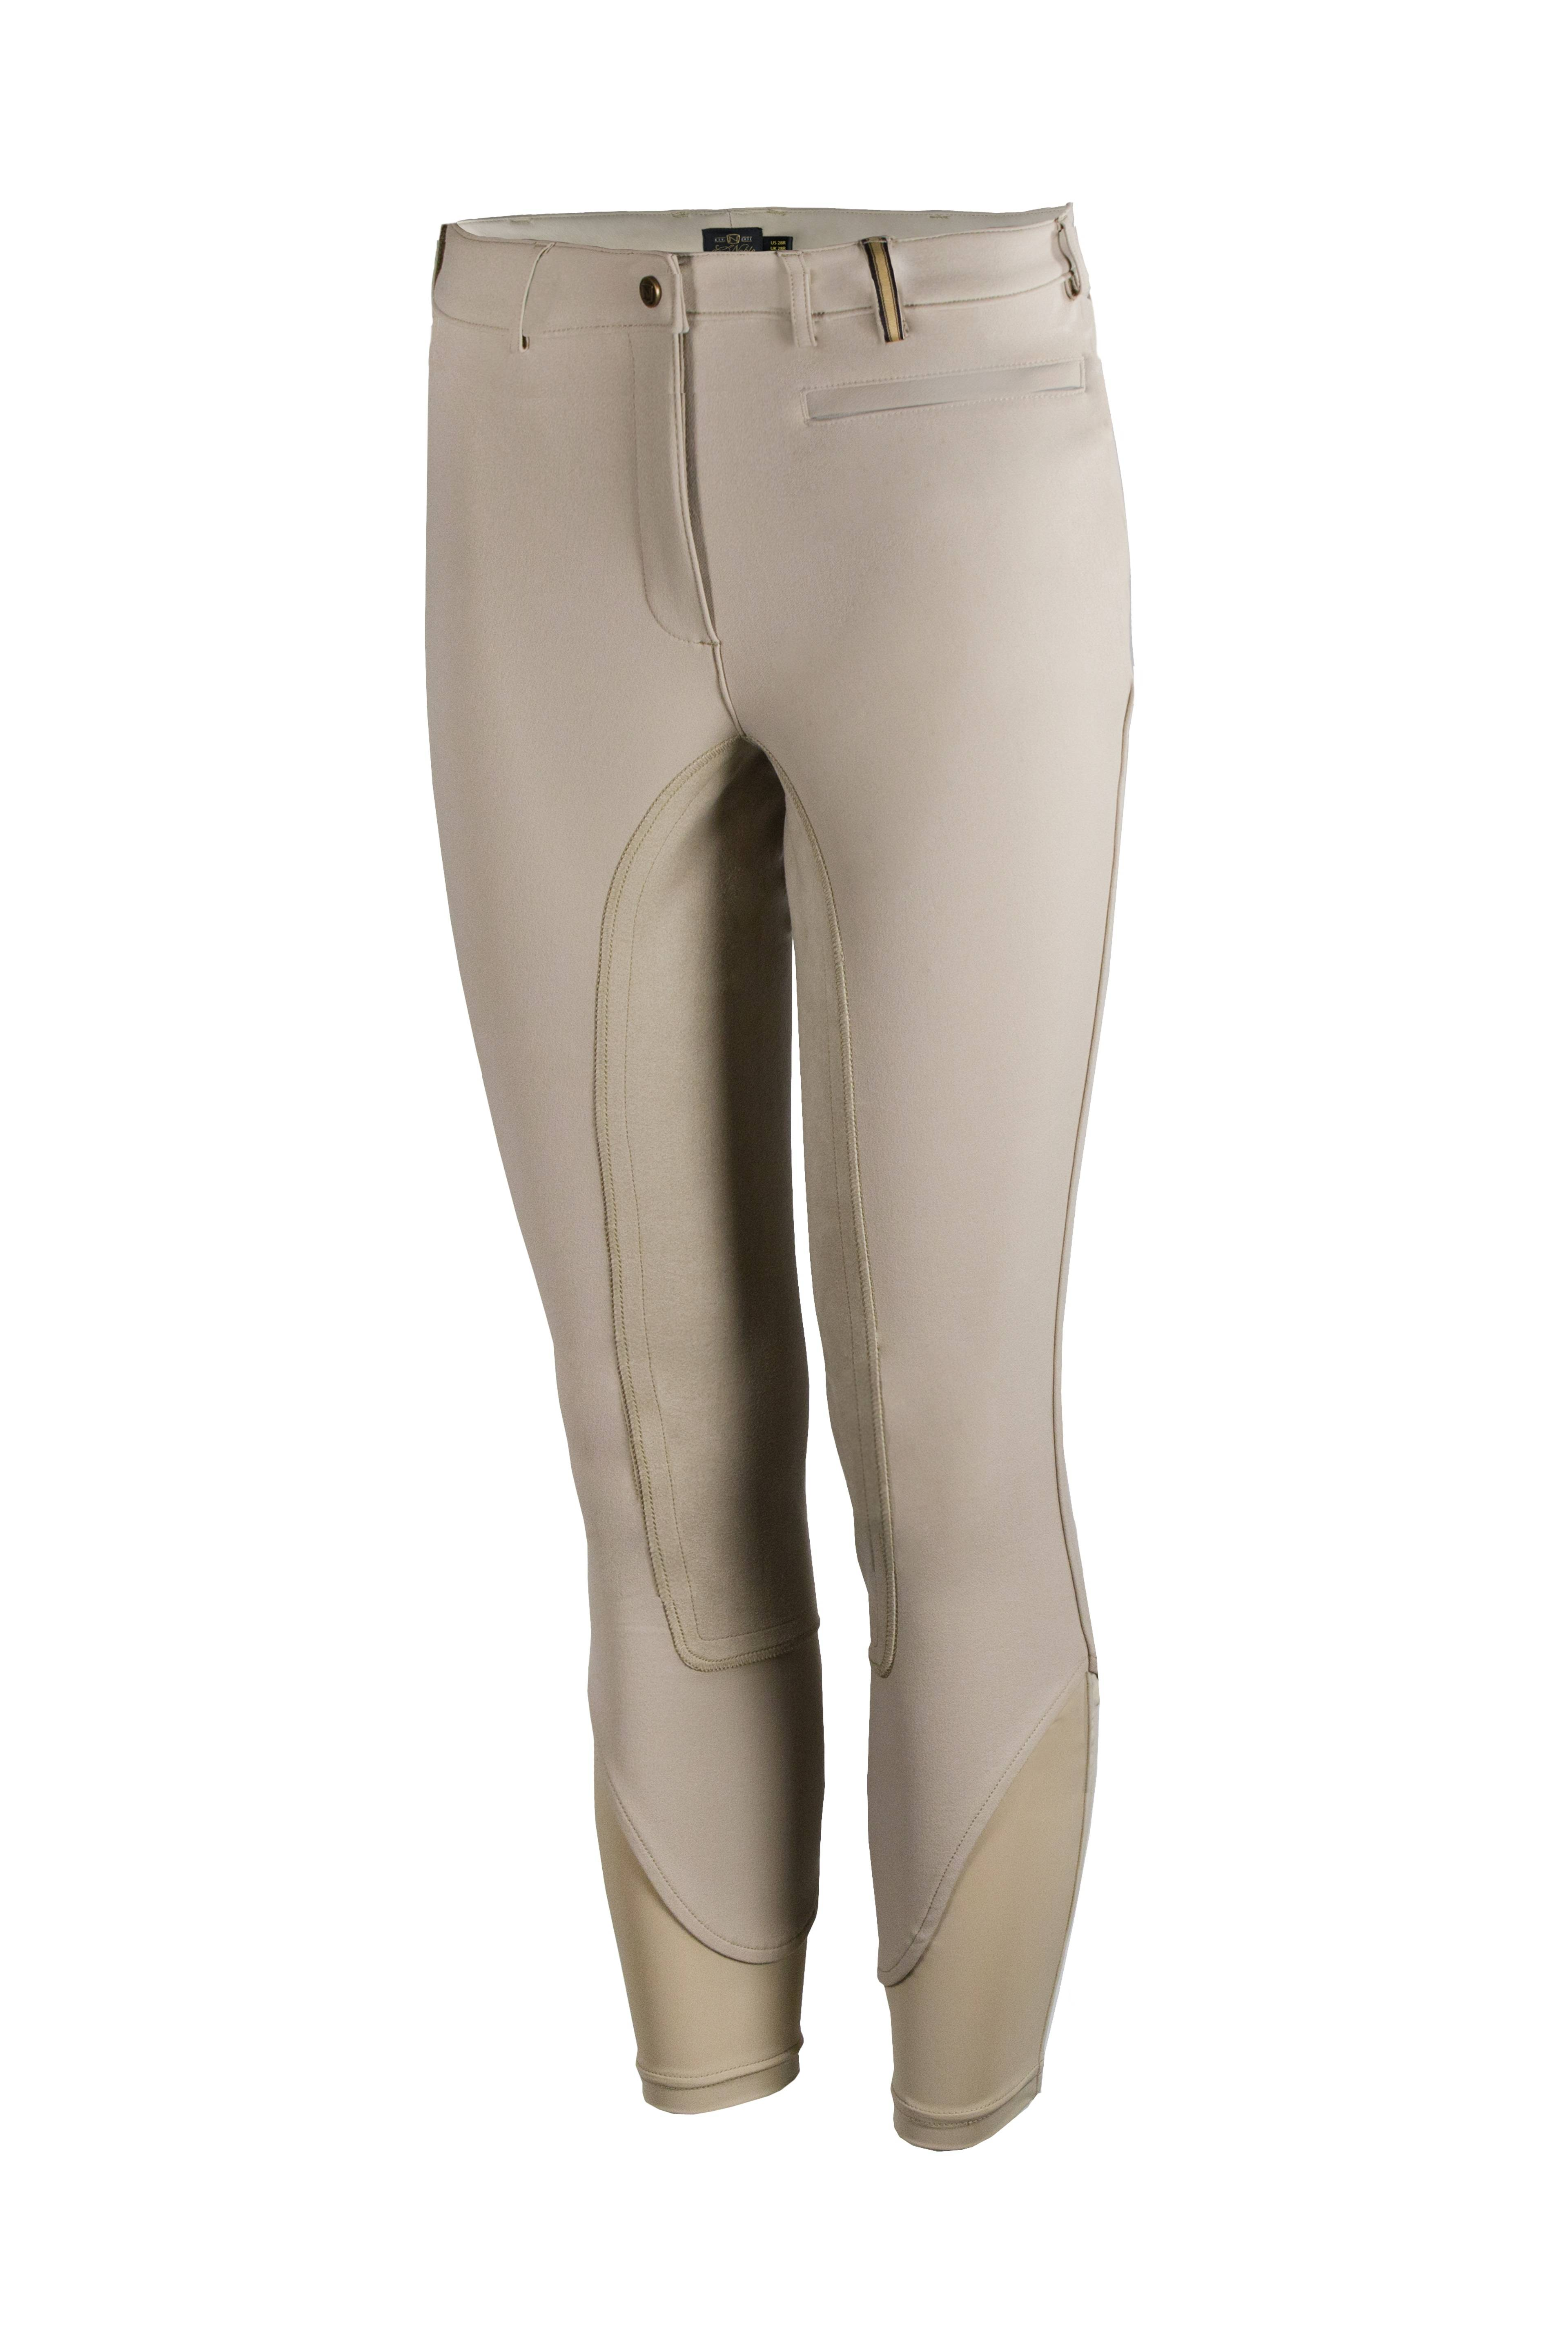 Noble Outfitters Signature Breech- Ladies, Full Seat